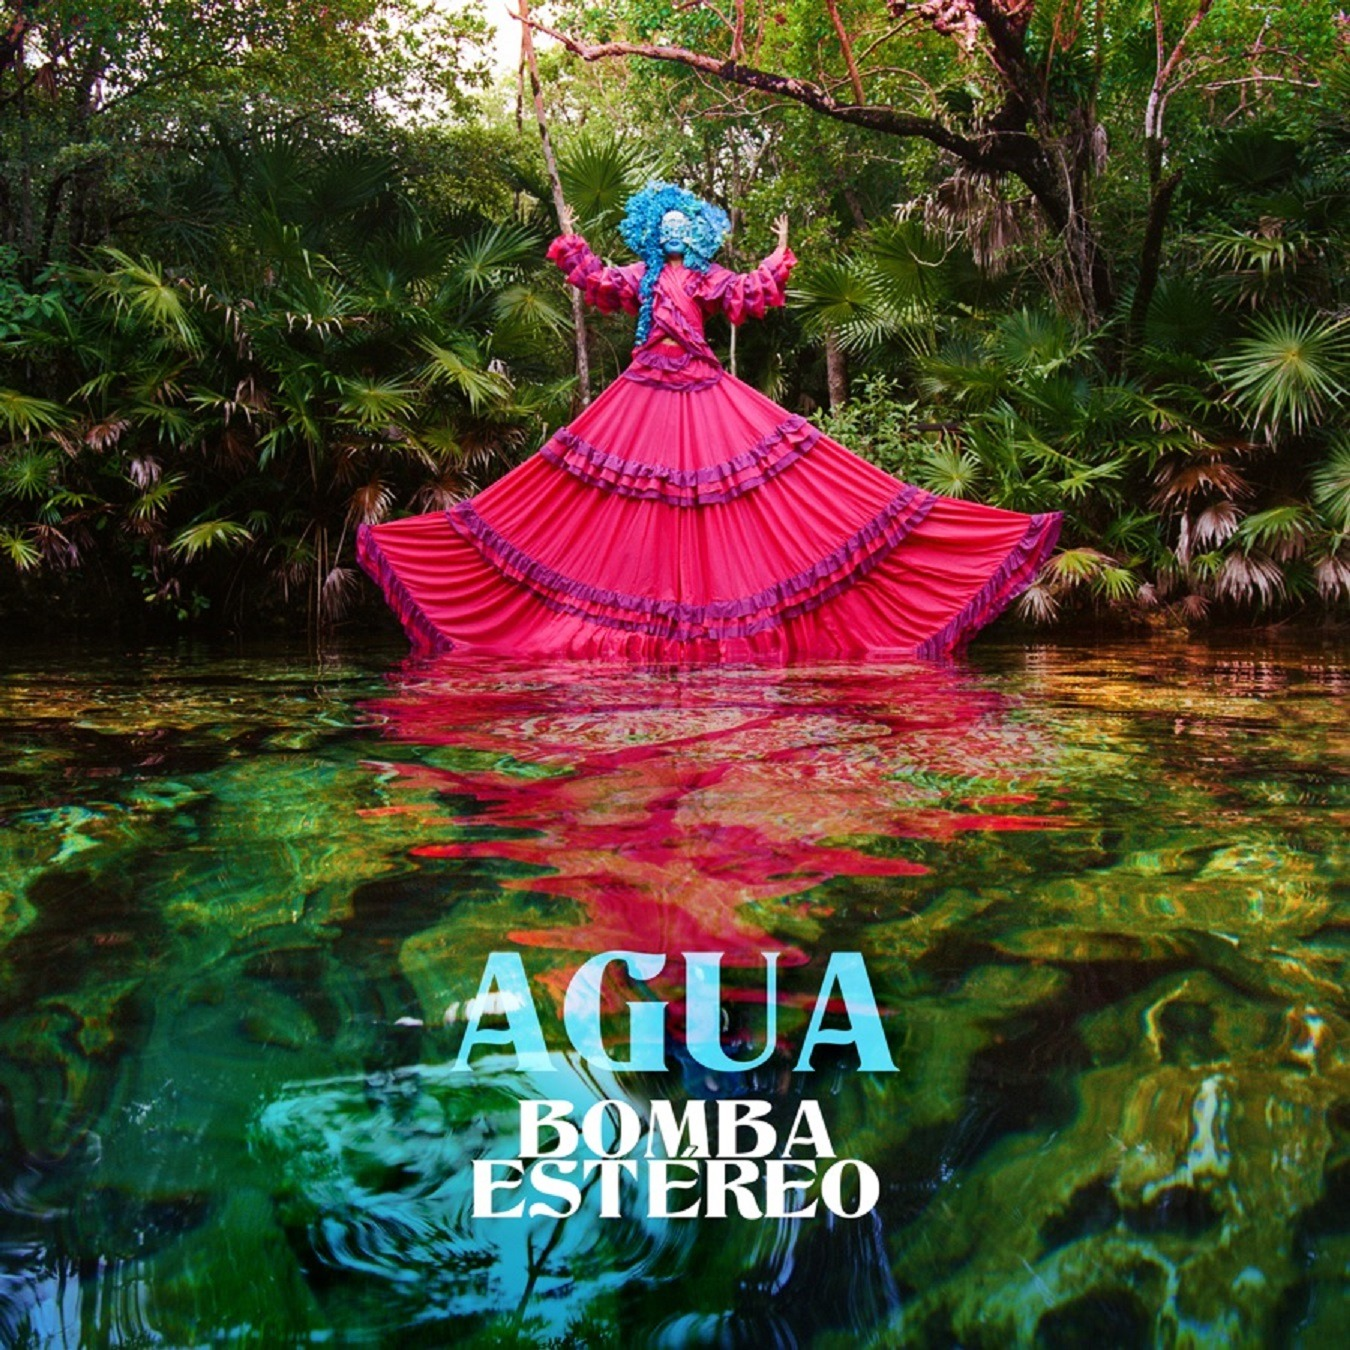 Bomba Estéreo Agua Audio Lyrics Video Download Mp3 Foreign Songs Lyrics Music Video